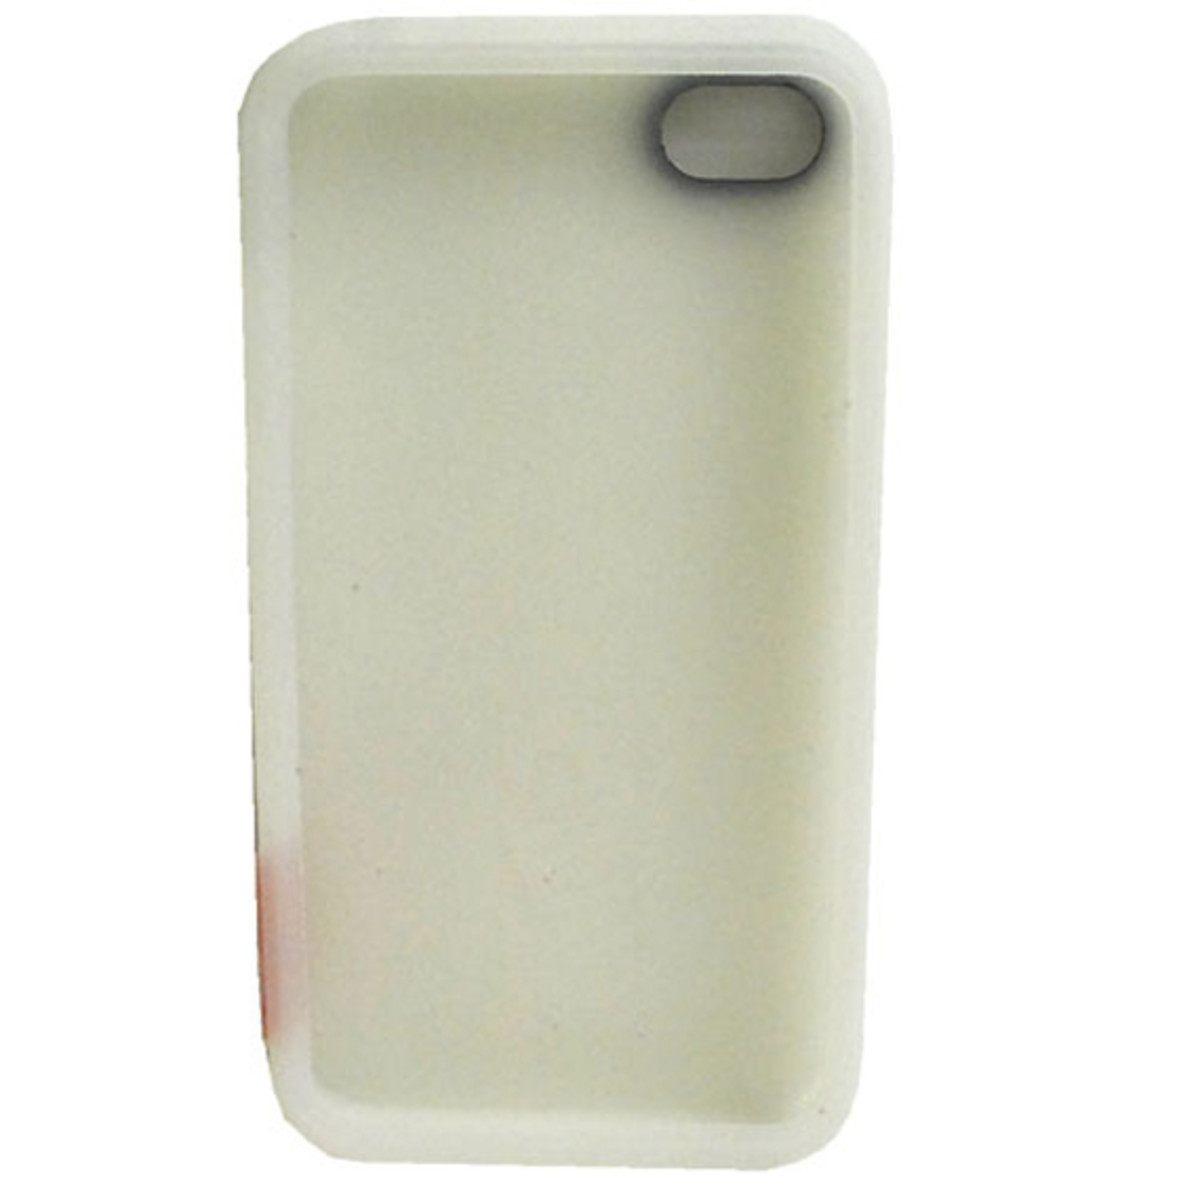 vans-rubber-waffle-sole-case-for-apple-iphone-4-glow-in-the-dark-edition-03